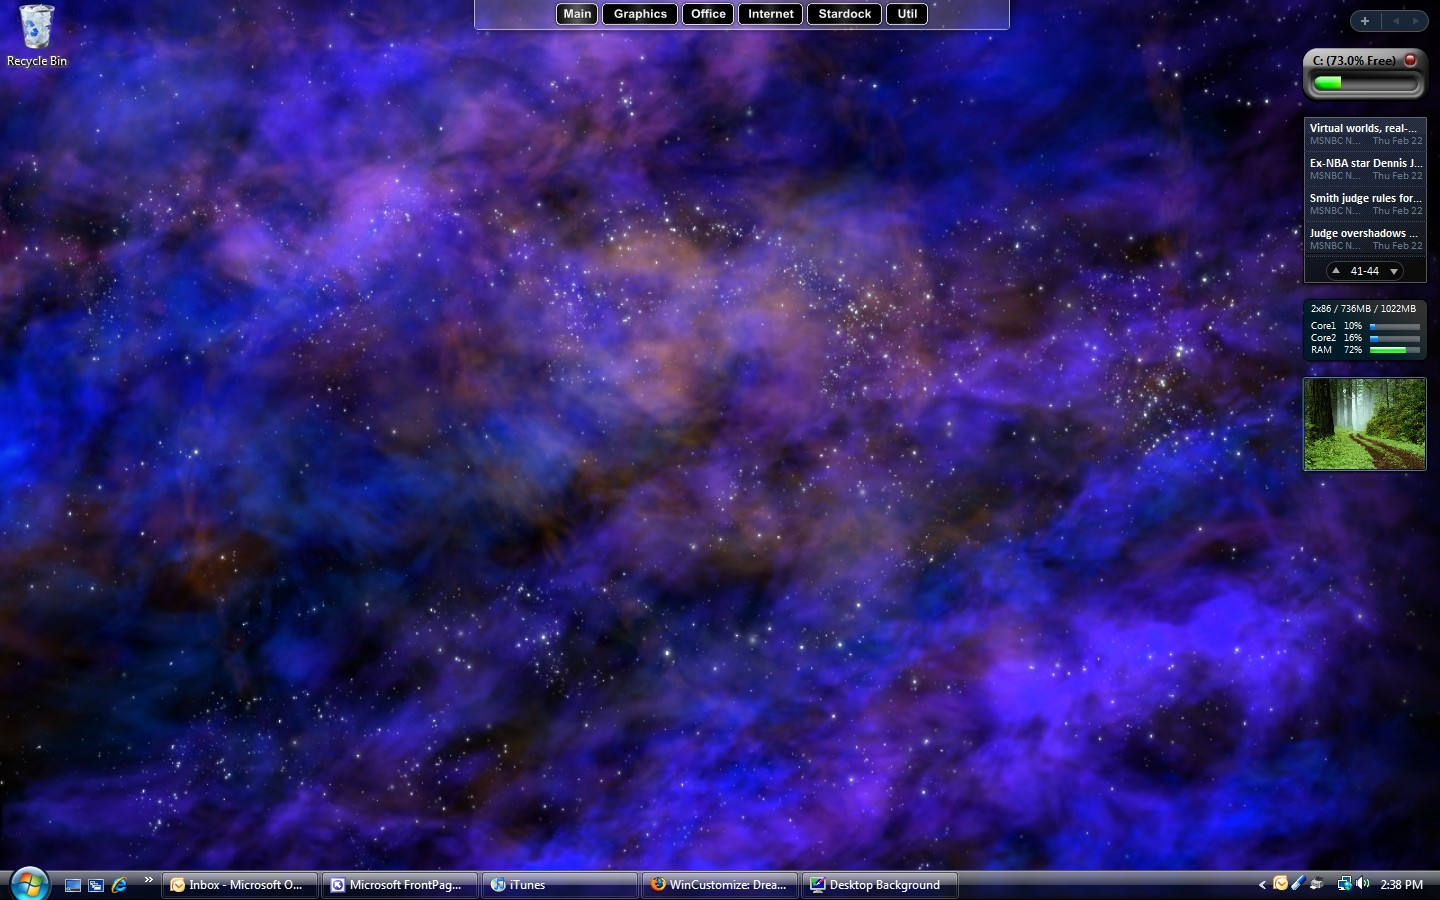 Stardock Animated Wallpaper Animated Wallpapers First Impression 187 Forum Post By